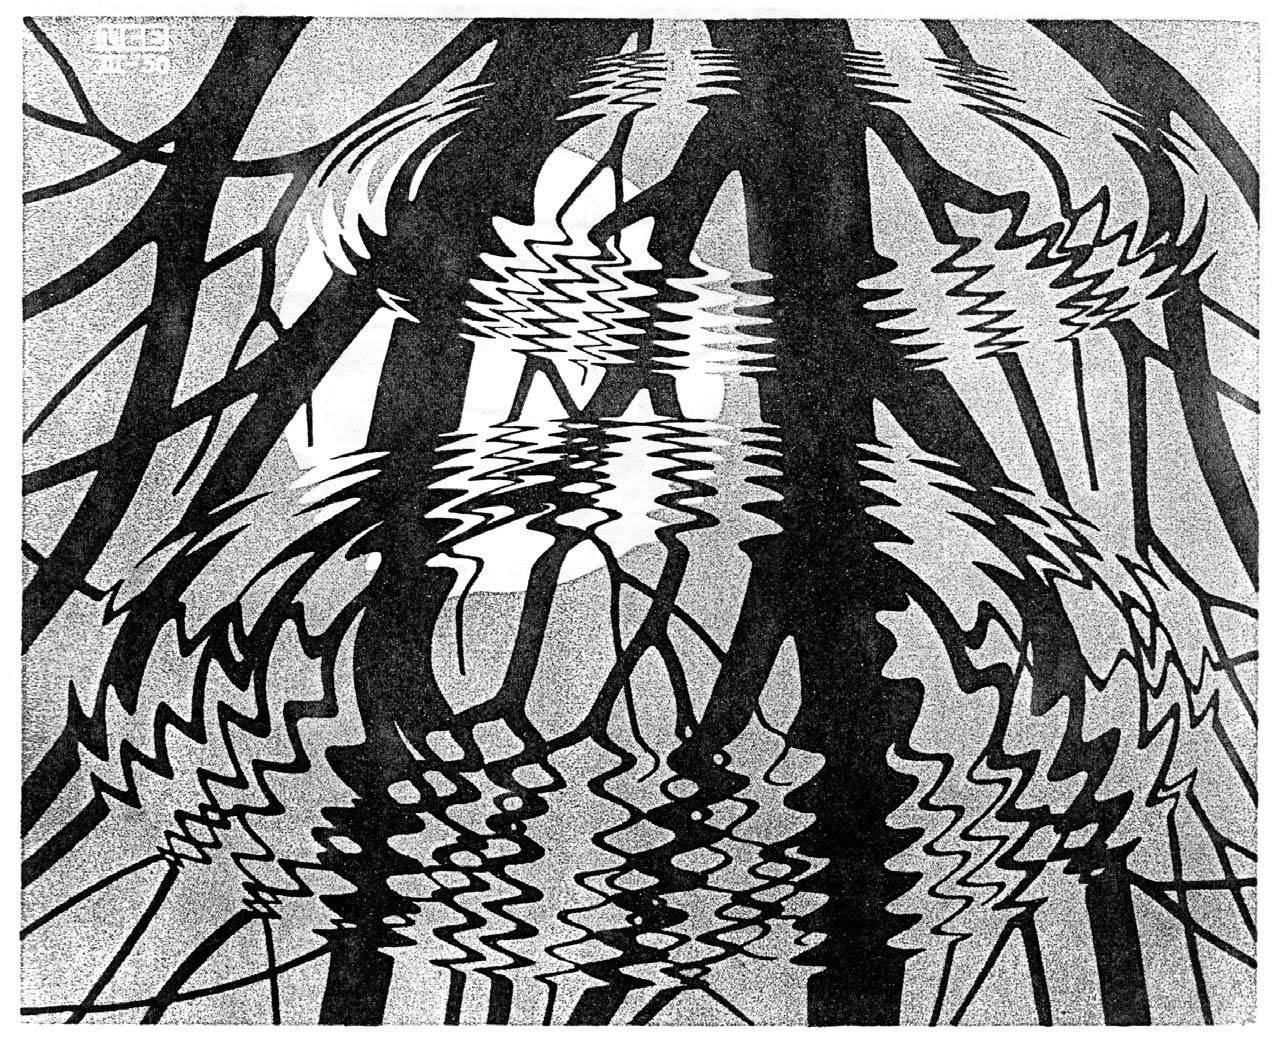 an introduction to the work of m c escher Introduction this website invites  enter, and explore the life and work of a remarkable artist m c escher, tree 1919, woodcut on wove paper, 461 × 375 cm.